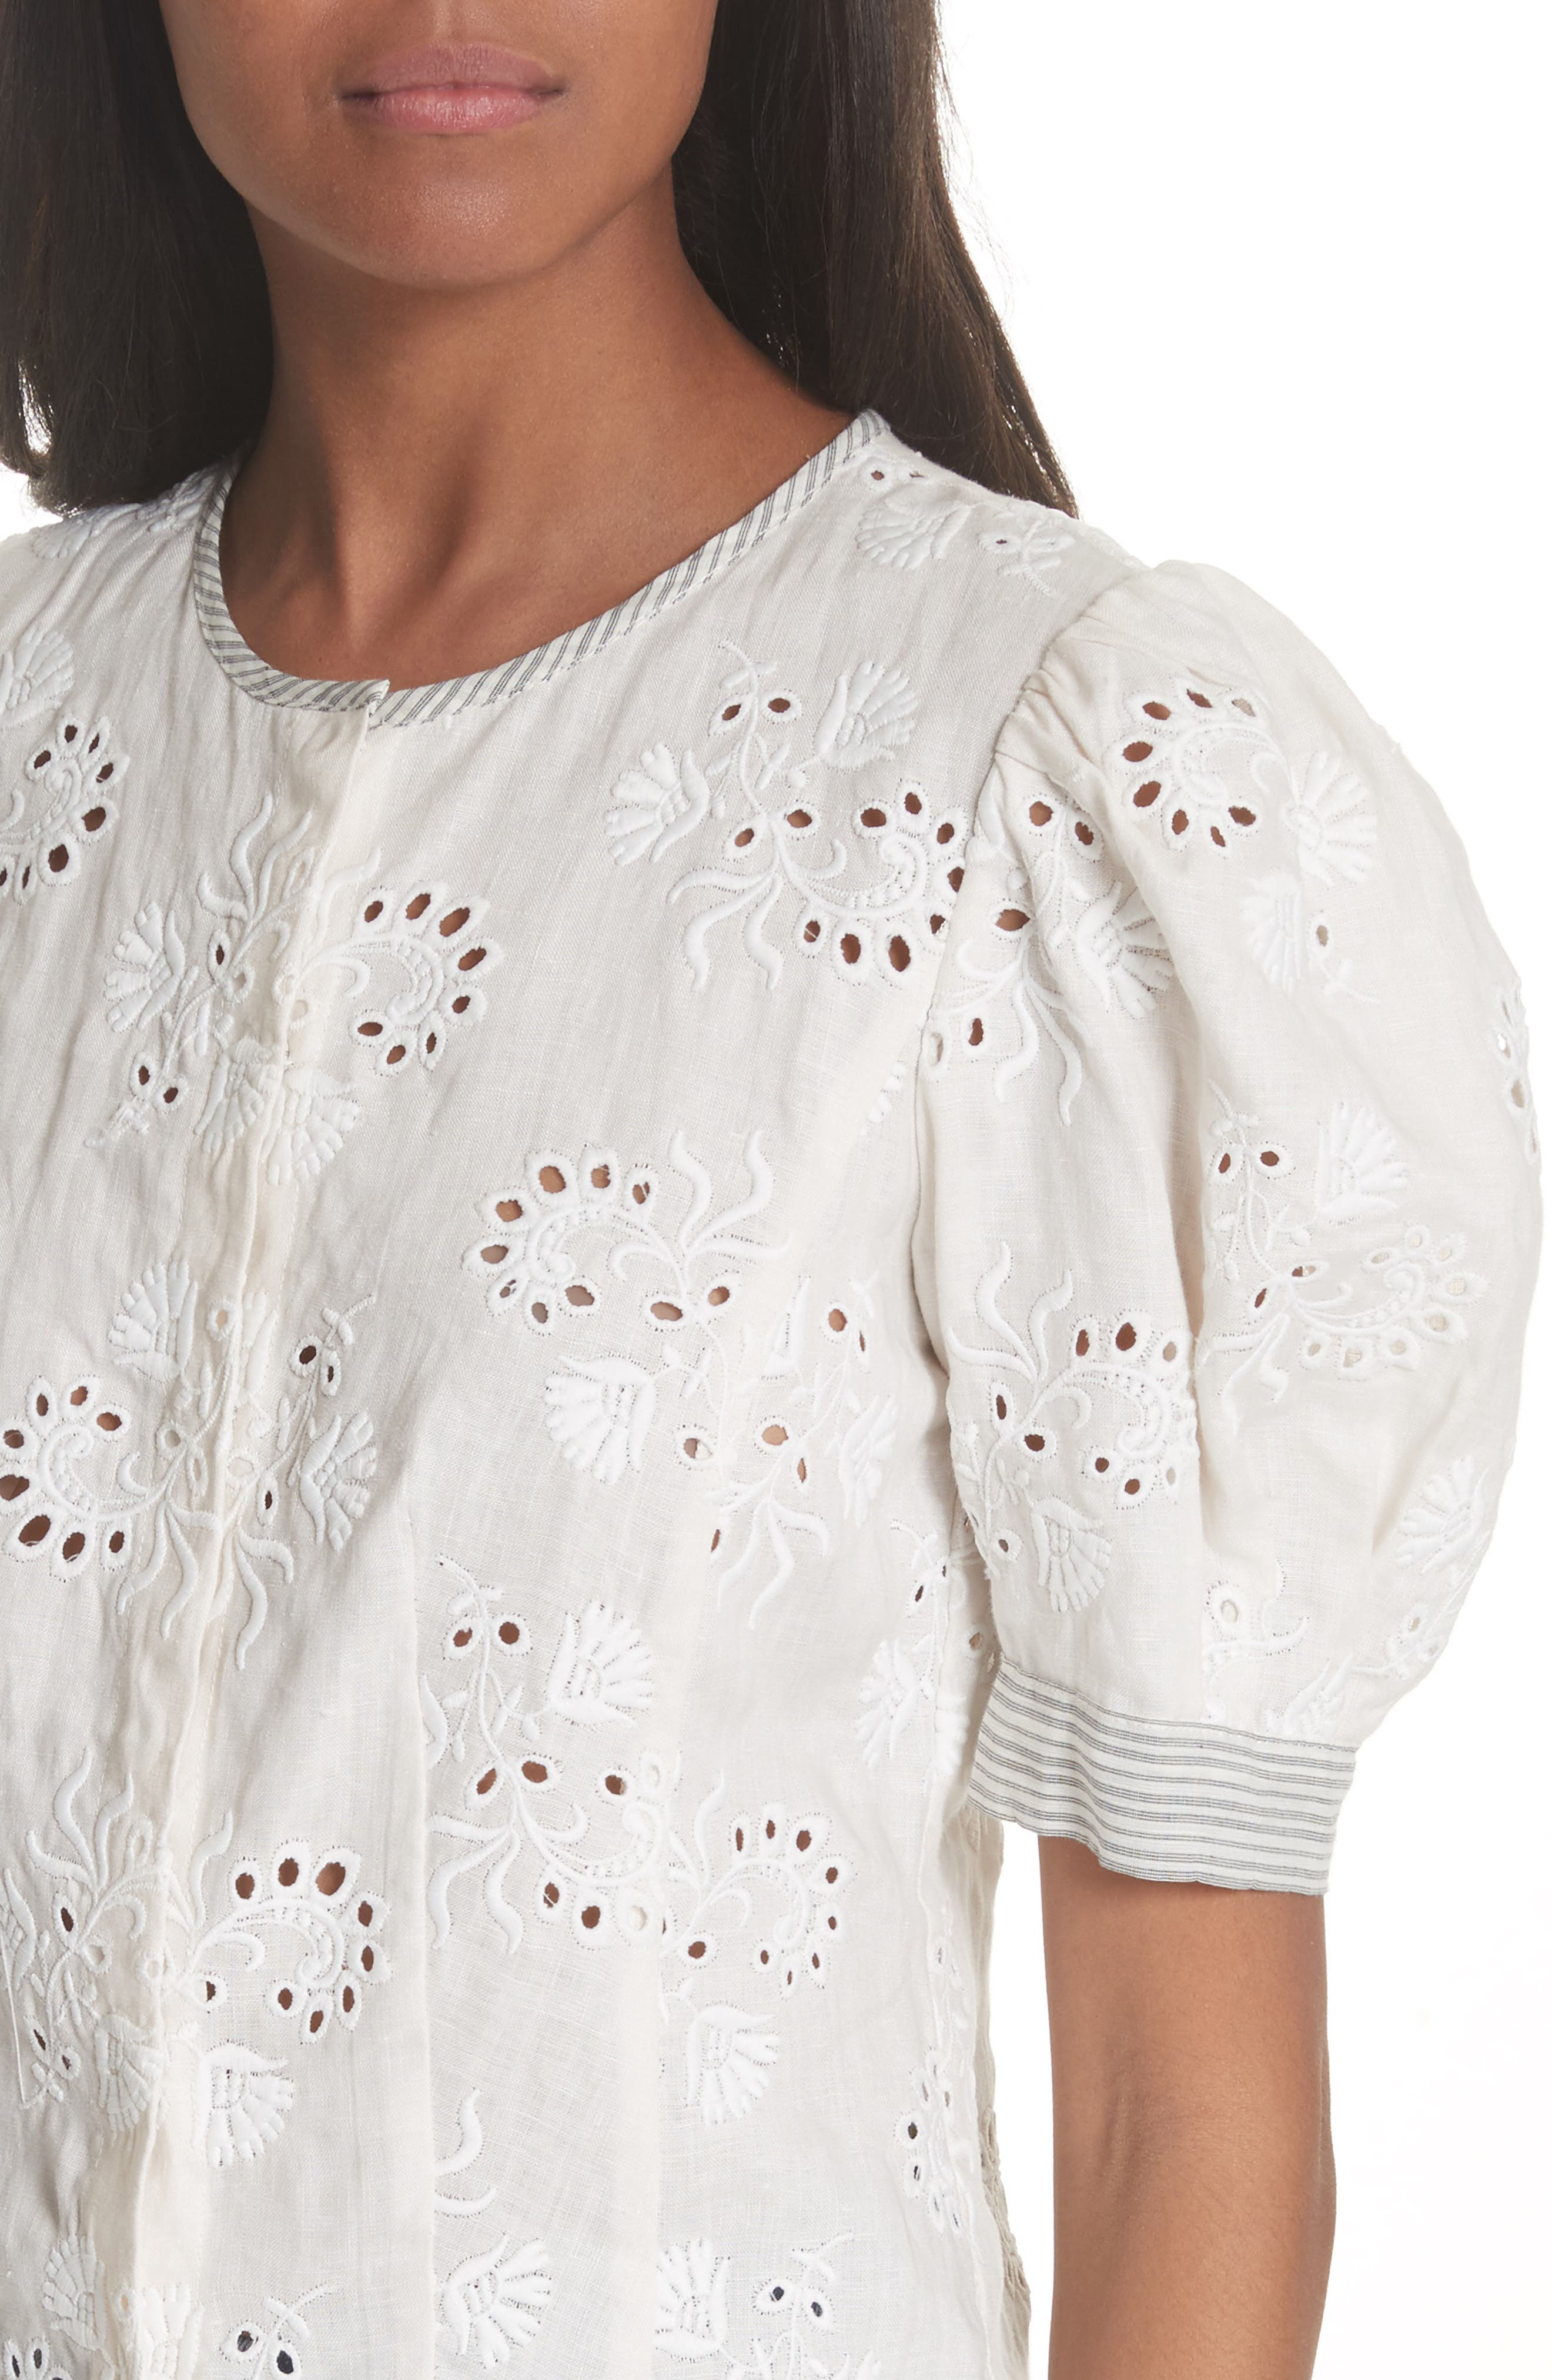 Garden Eyelet Linen Top,                             Alternate thumbnail 4, color,                             192